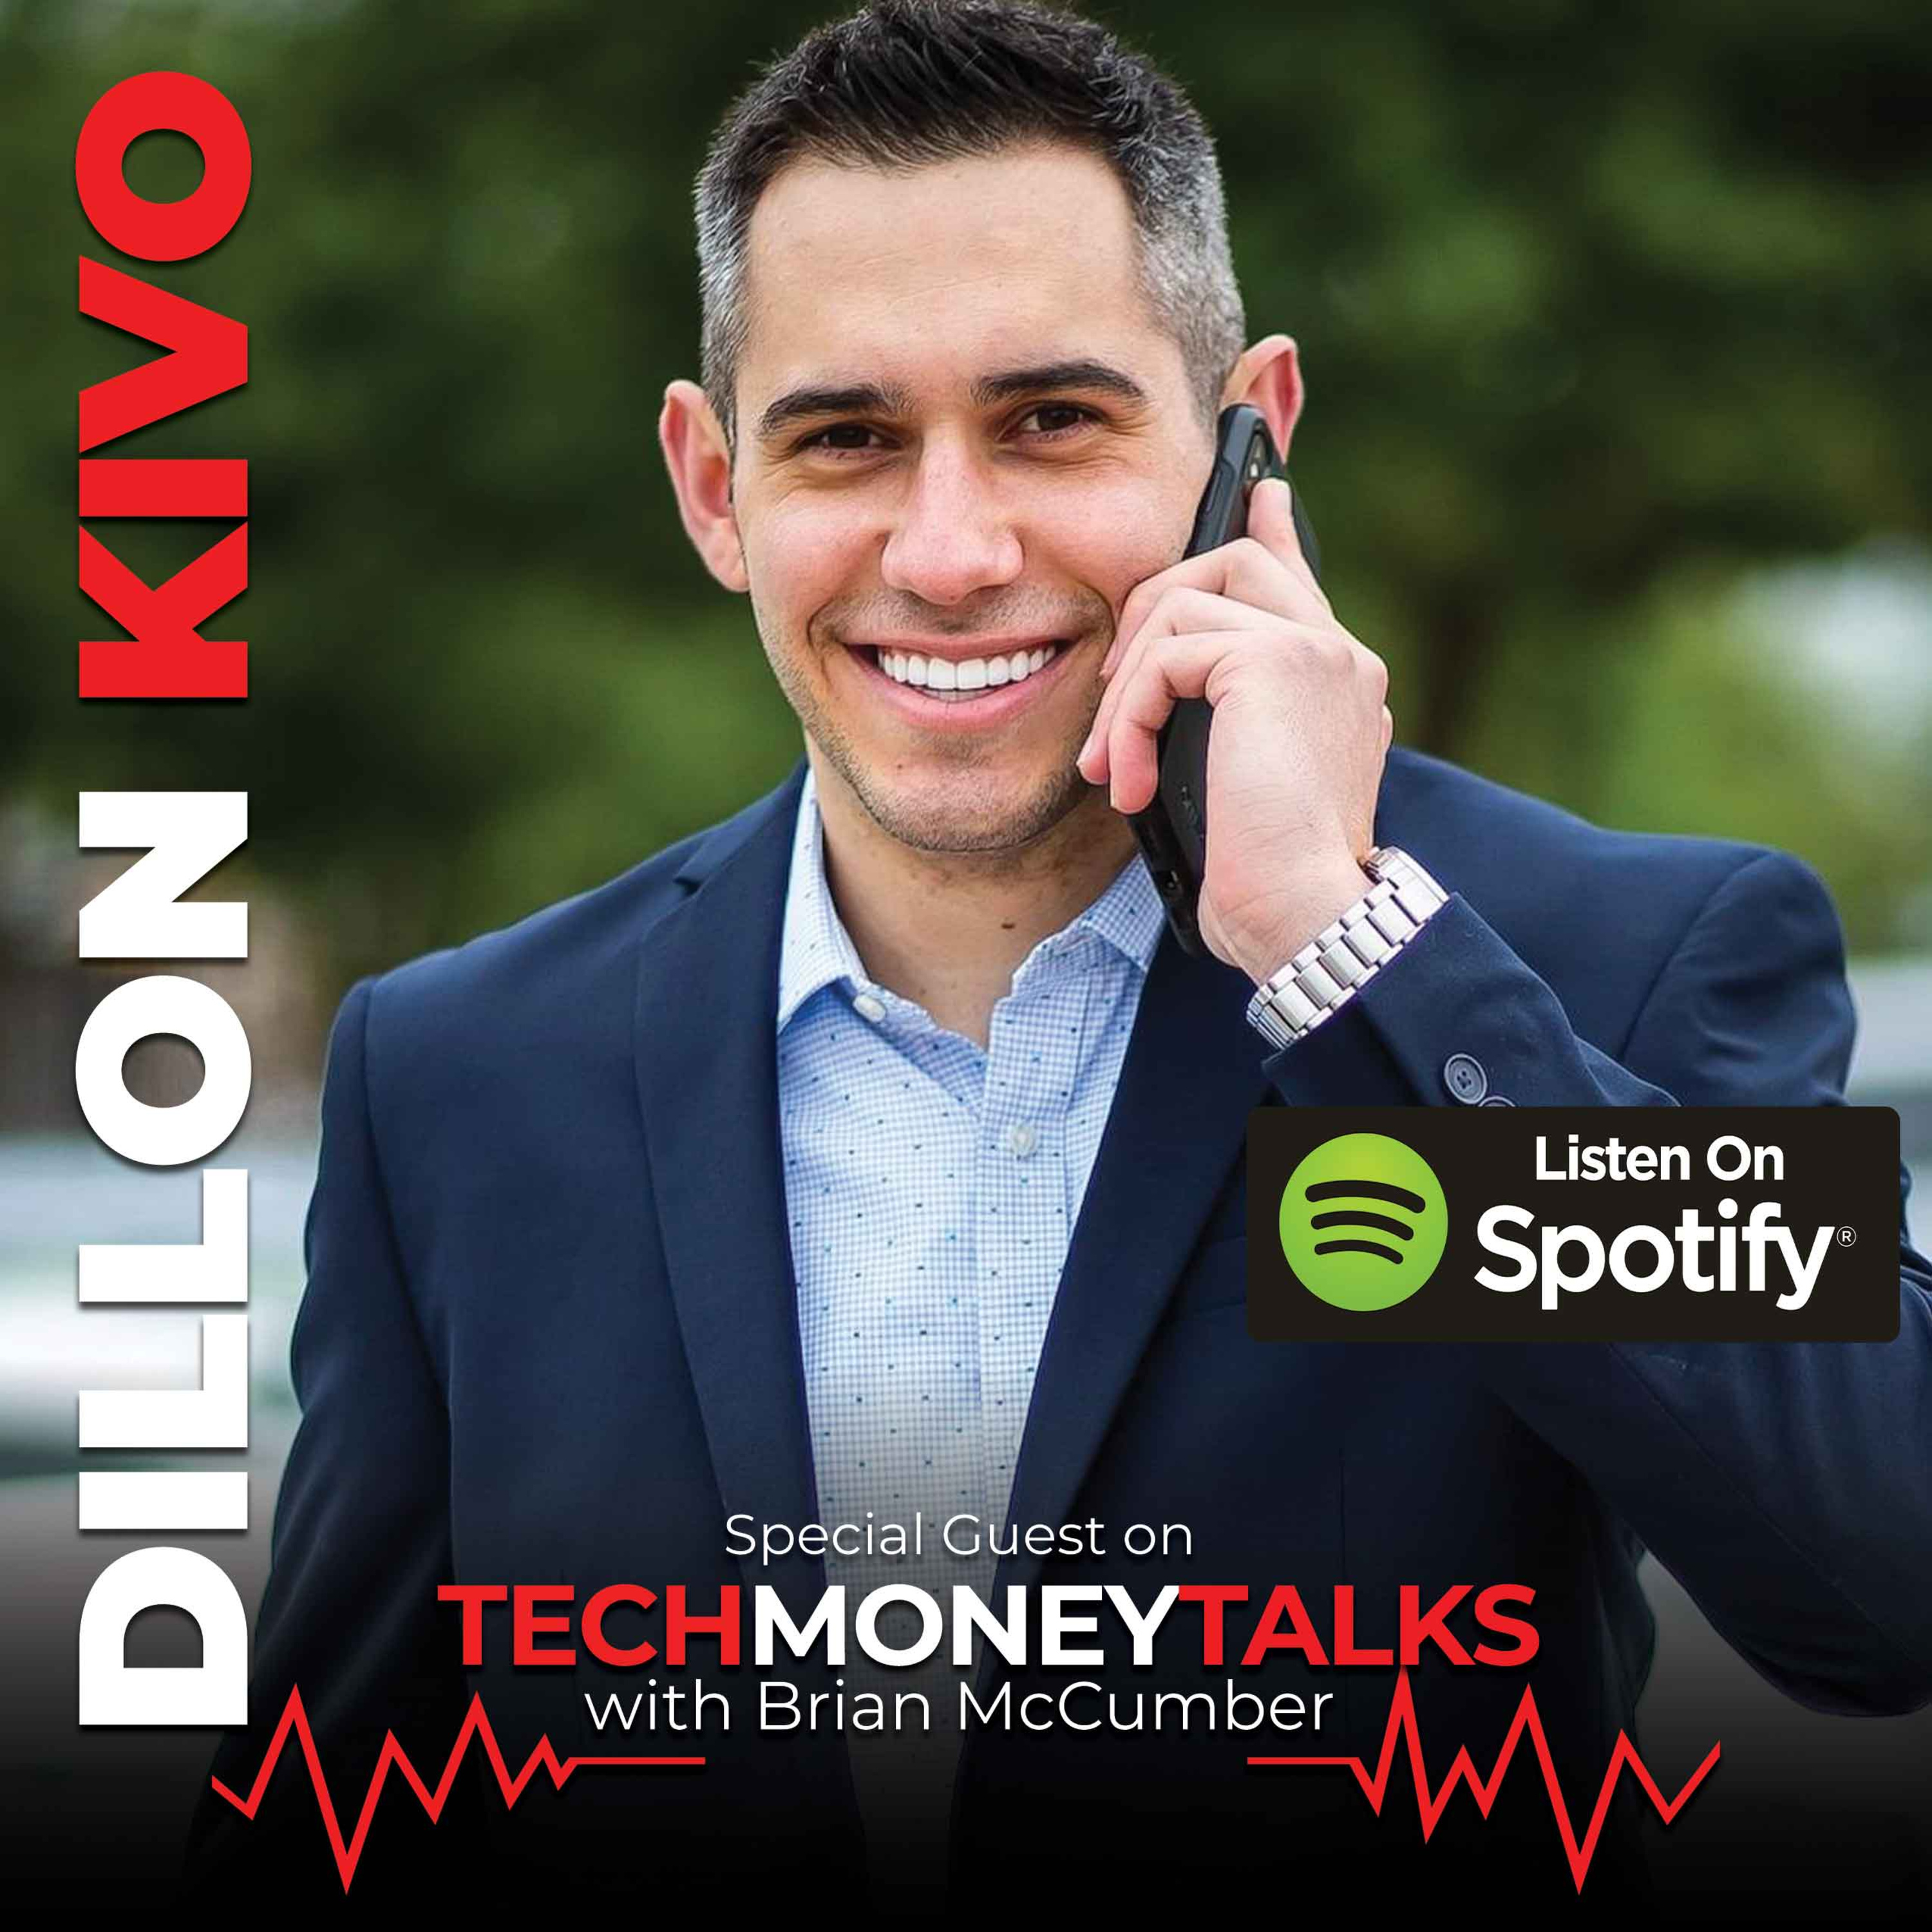 Dillon Kivo, Essential Branding and PR To Go Next Level, Founder of Kivo Daily, Global Digital Media Technology, Brand Building, and Business